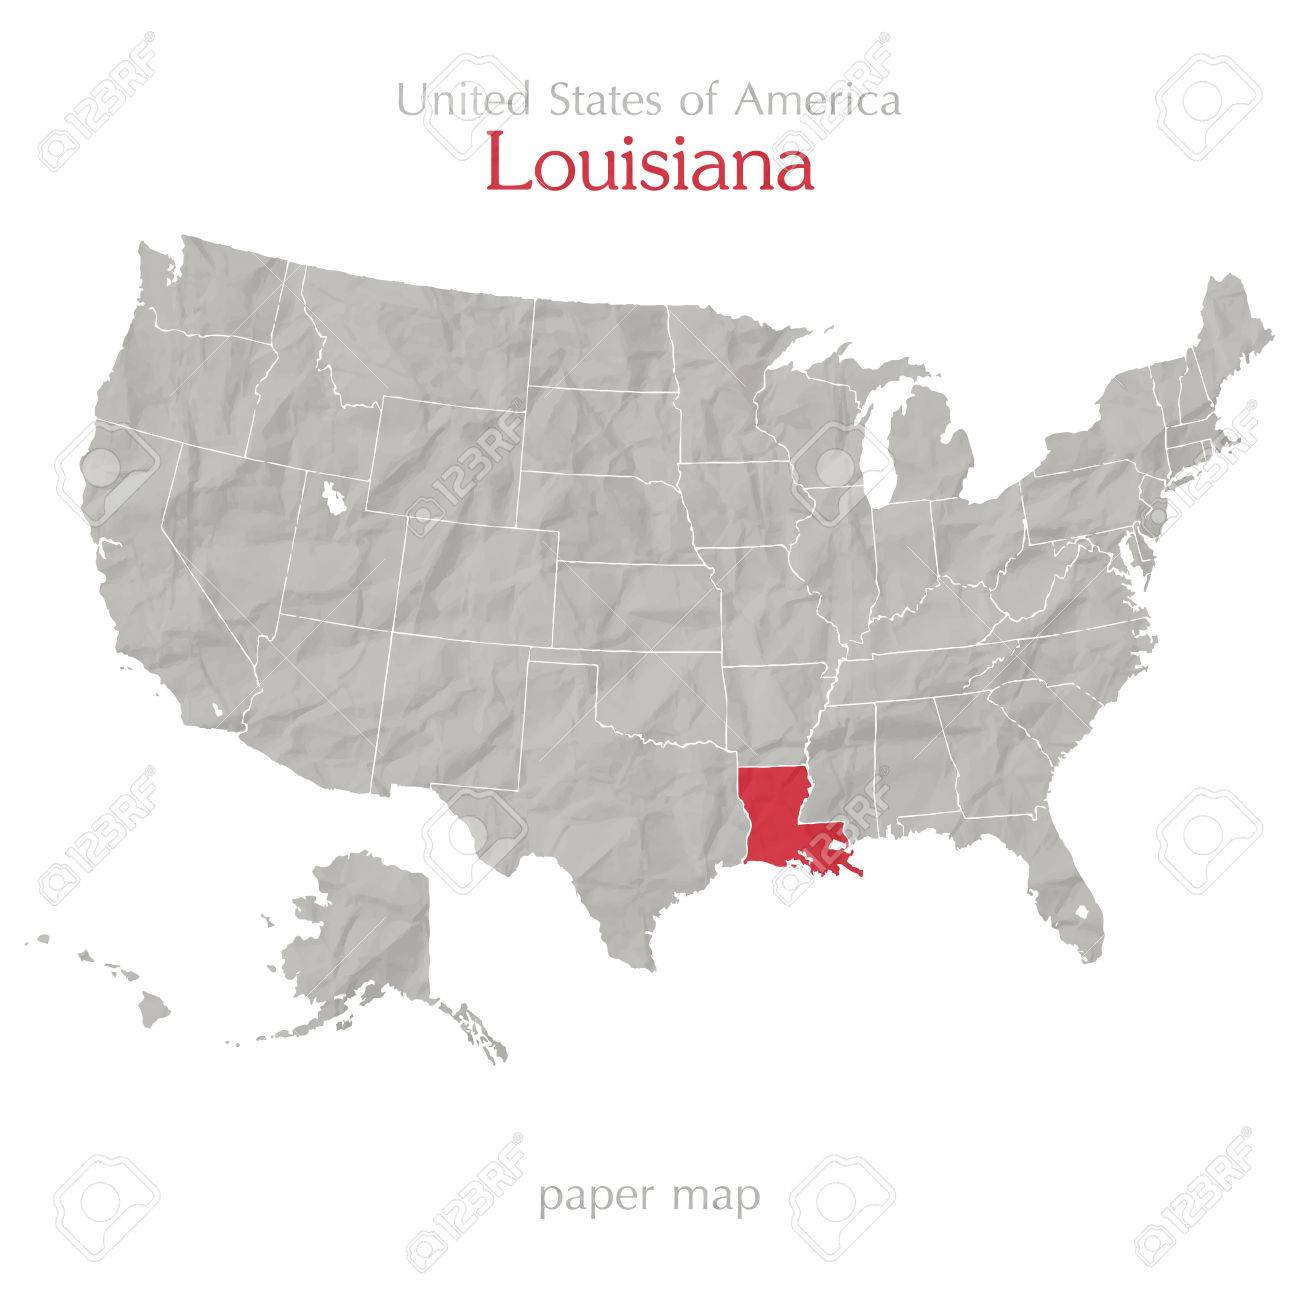 Map Of Louisiana Territory.United States Of America Map And Louisiana Territory On Paper